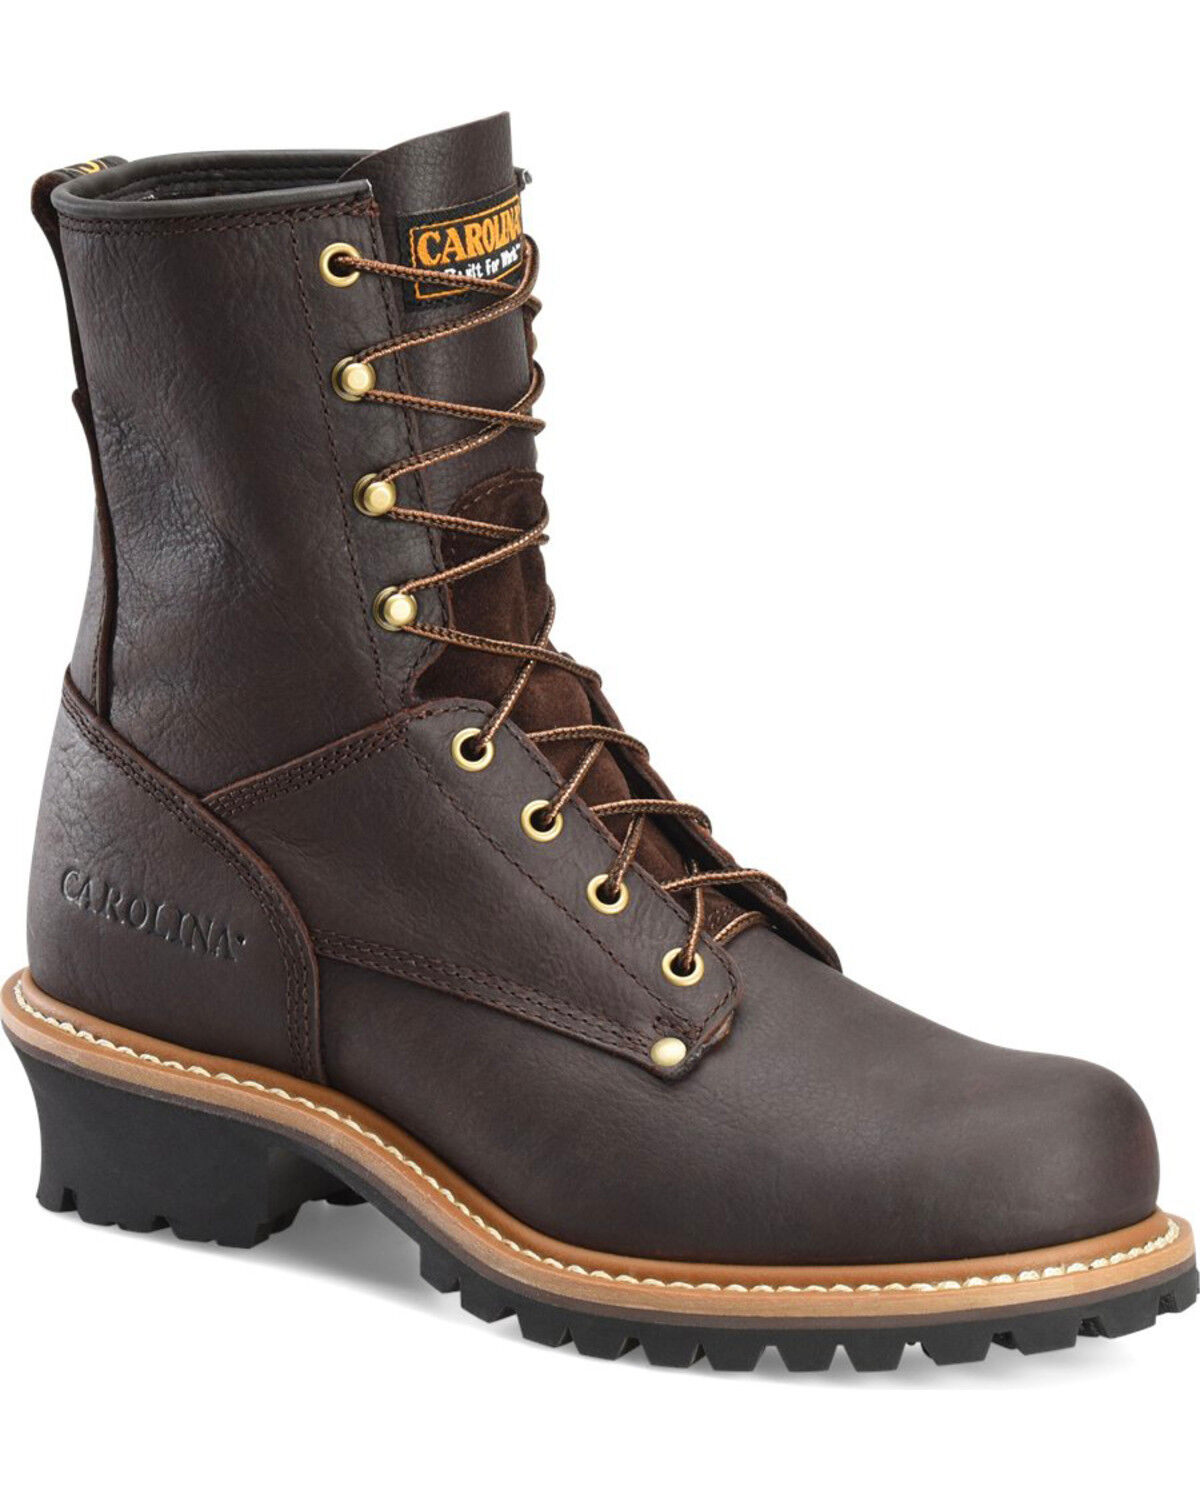 Work Boots - Size 16 EE - Boot Barn